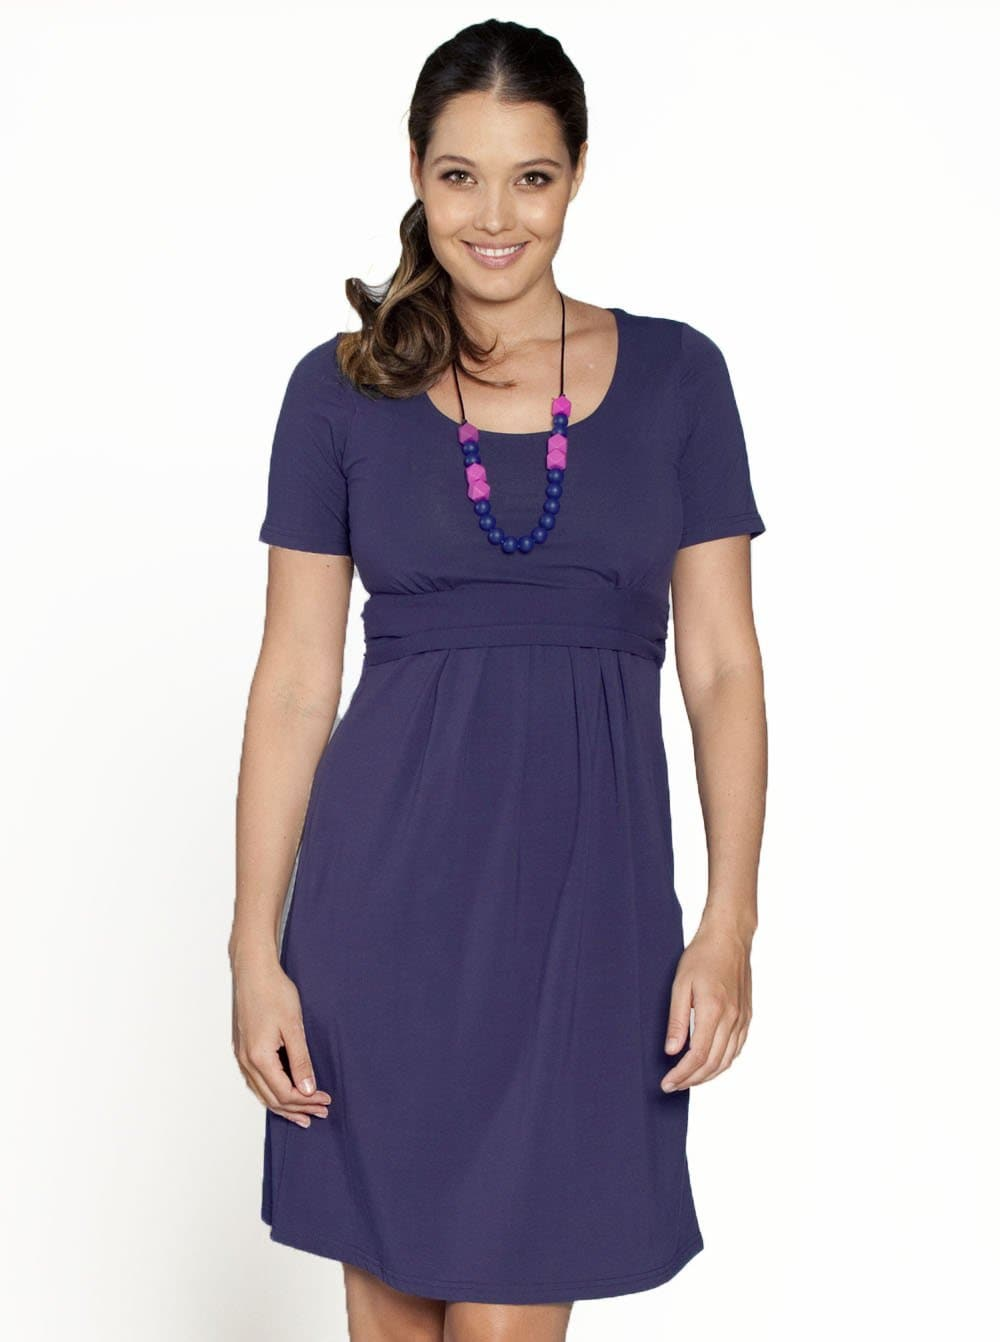 Busy Mummy Nursing Empire Waist Dress in Purple - Angel Maternity - Maternity clothes - shop online